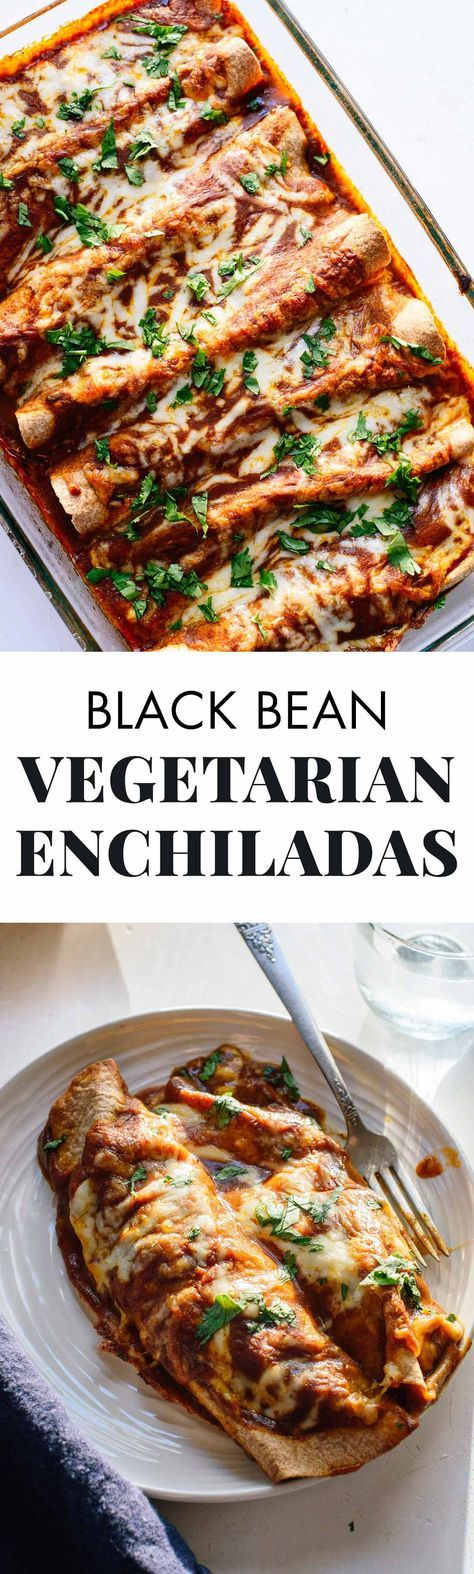 Delicious vegetable enchiladas recipe with black beans and homemade red sauce - http://cookieandkate.com